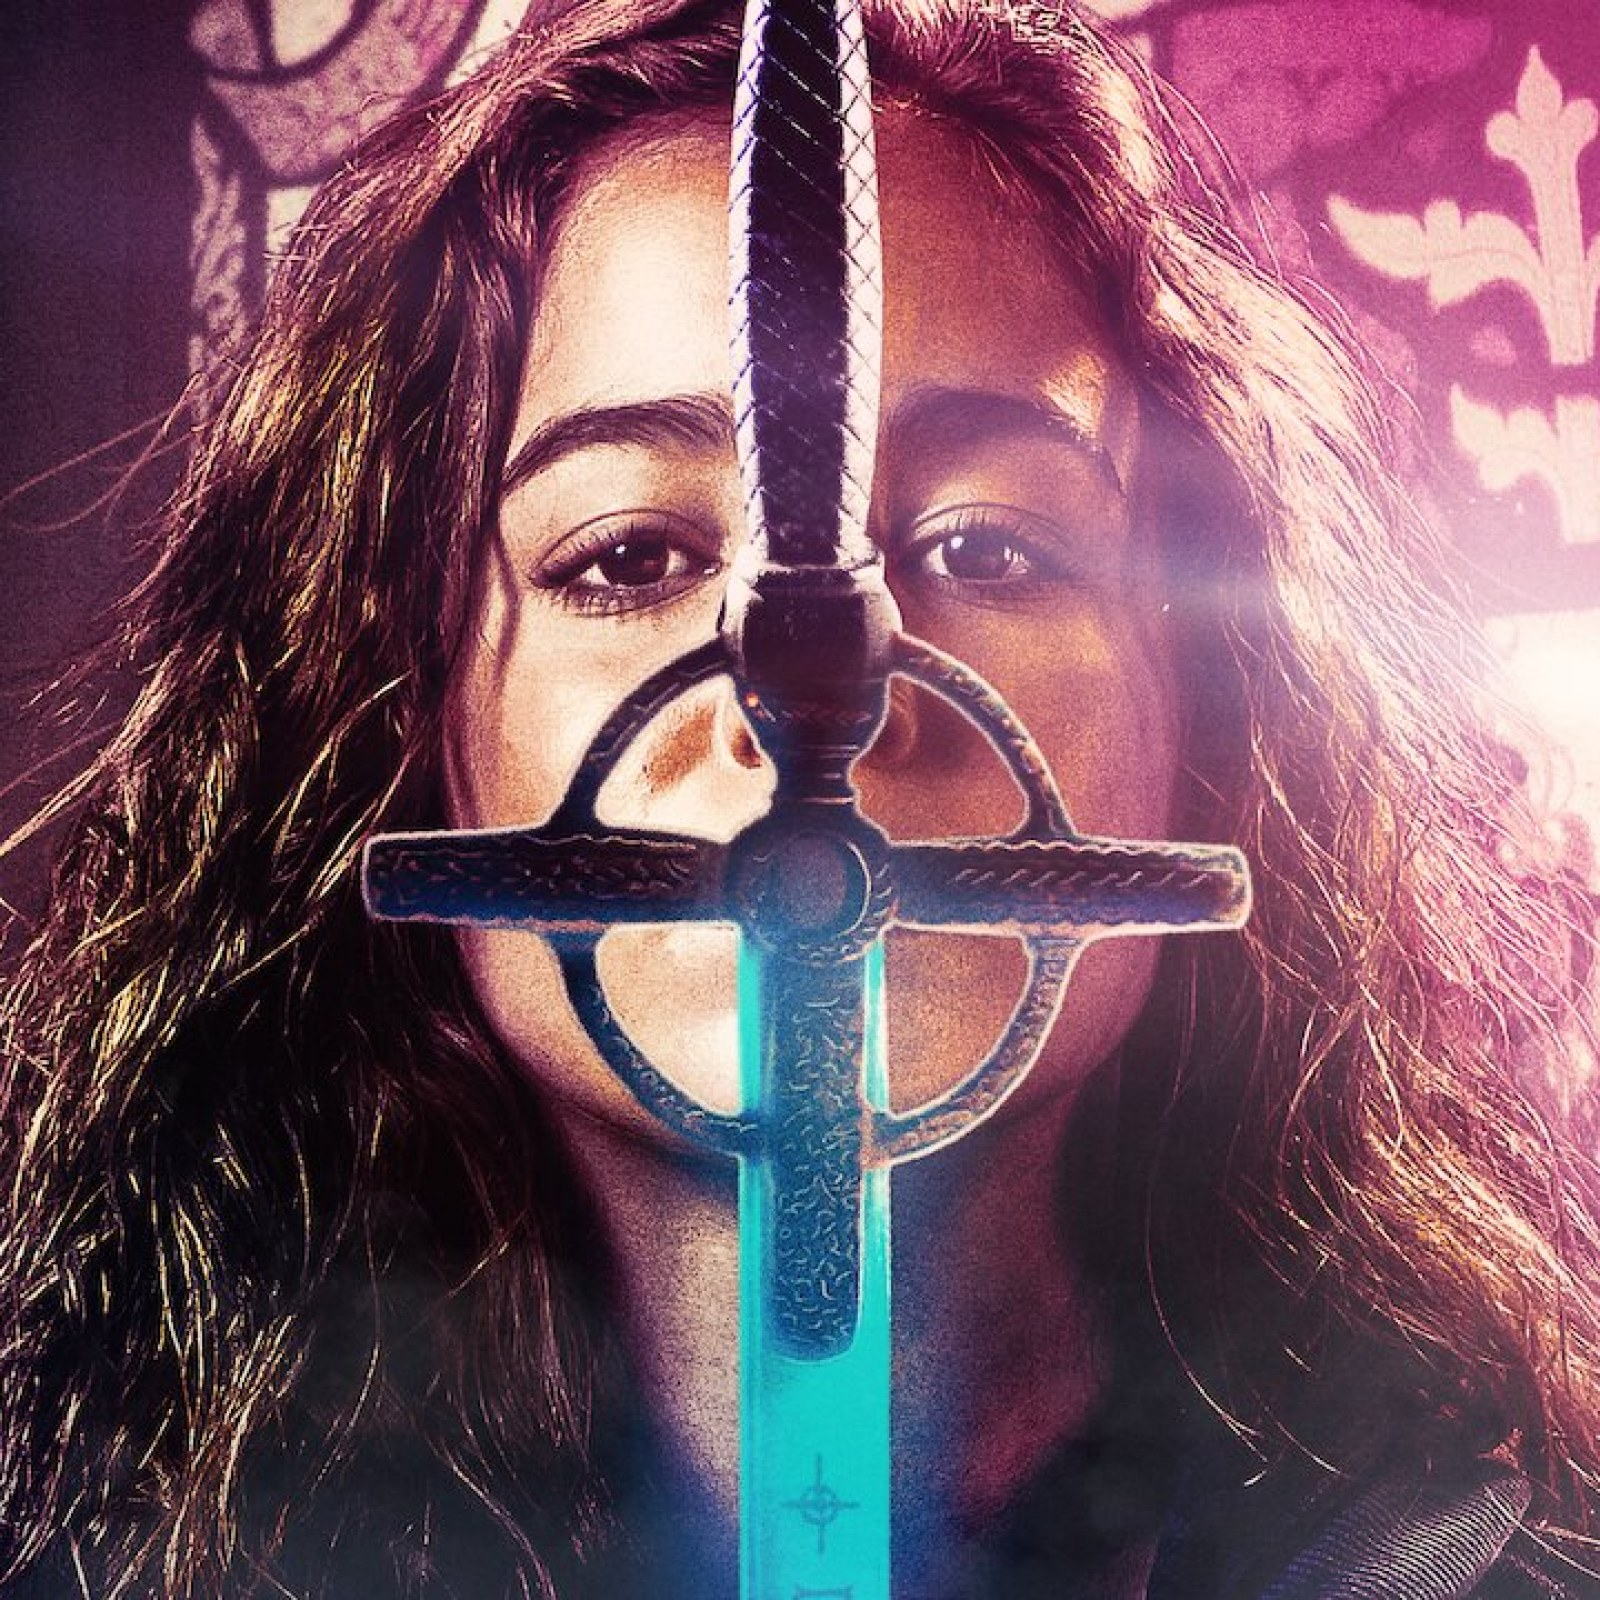 Warrior Nun' on Netflix: What the Cast and Crew Have Teased About ...